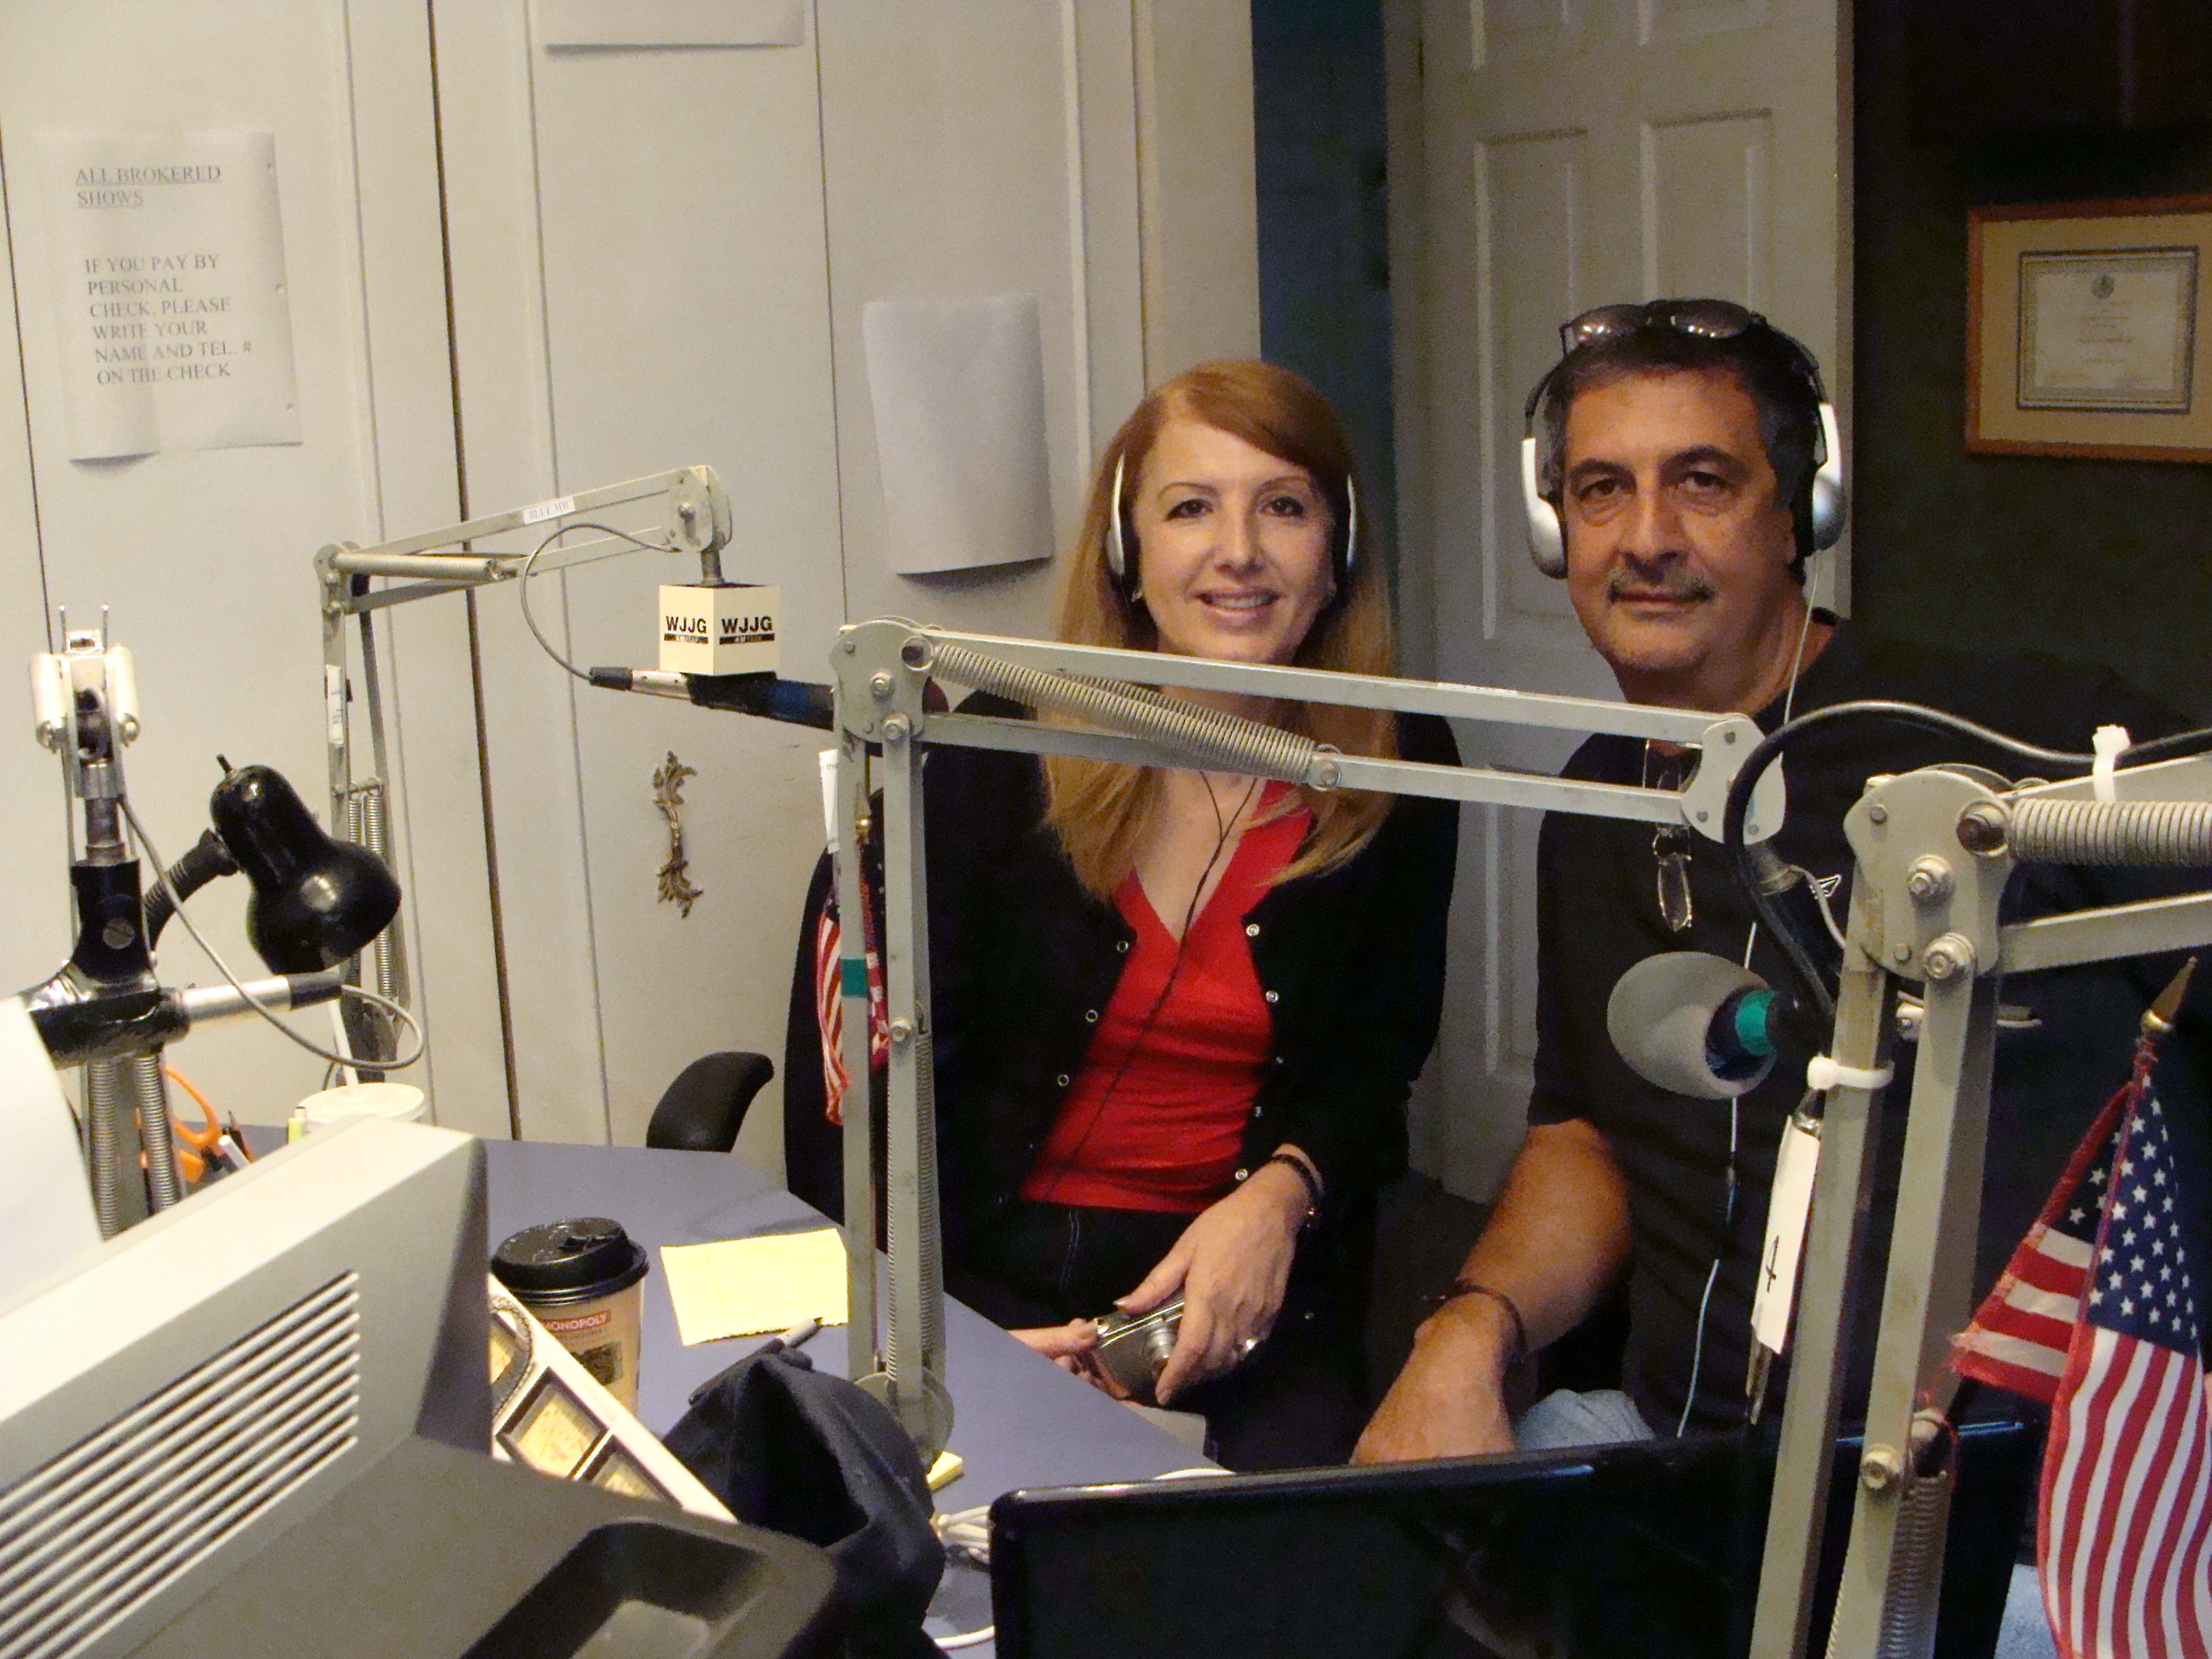 Ray Hanania interviews Nadia Hilou, October 7, 2008 on Morning Radio. When Hanania interviewed Hilo, extremist Israelis and Palestinians denounced me and her, with Palestinians calling her a traitor because she was a Christian Israeli Palestinian serving in the Israeli Knesset.